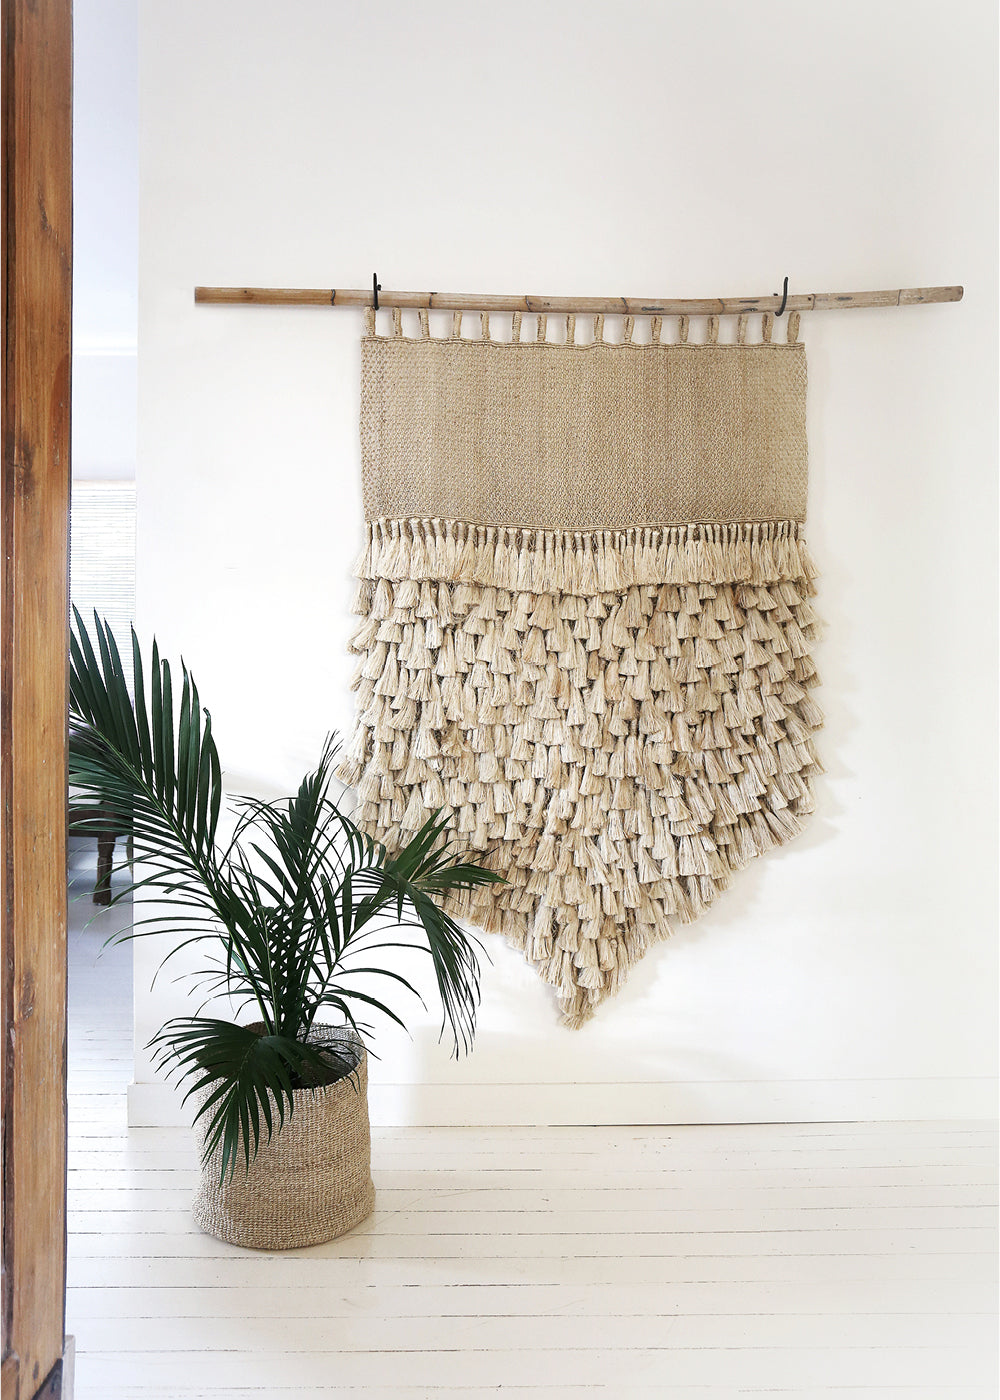 How Woven Wall Hangings Enhance a Space